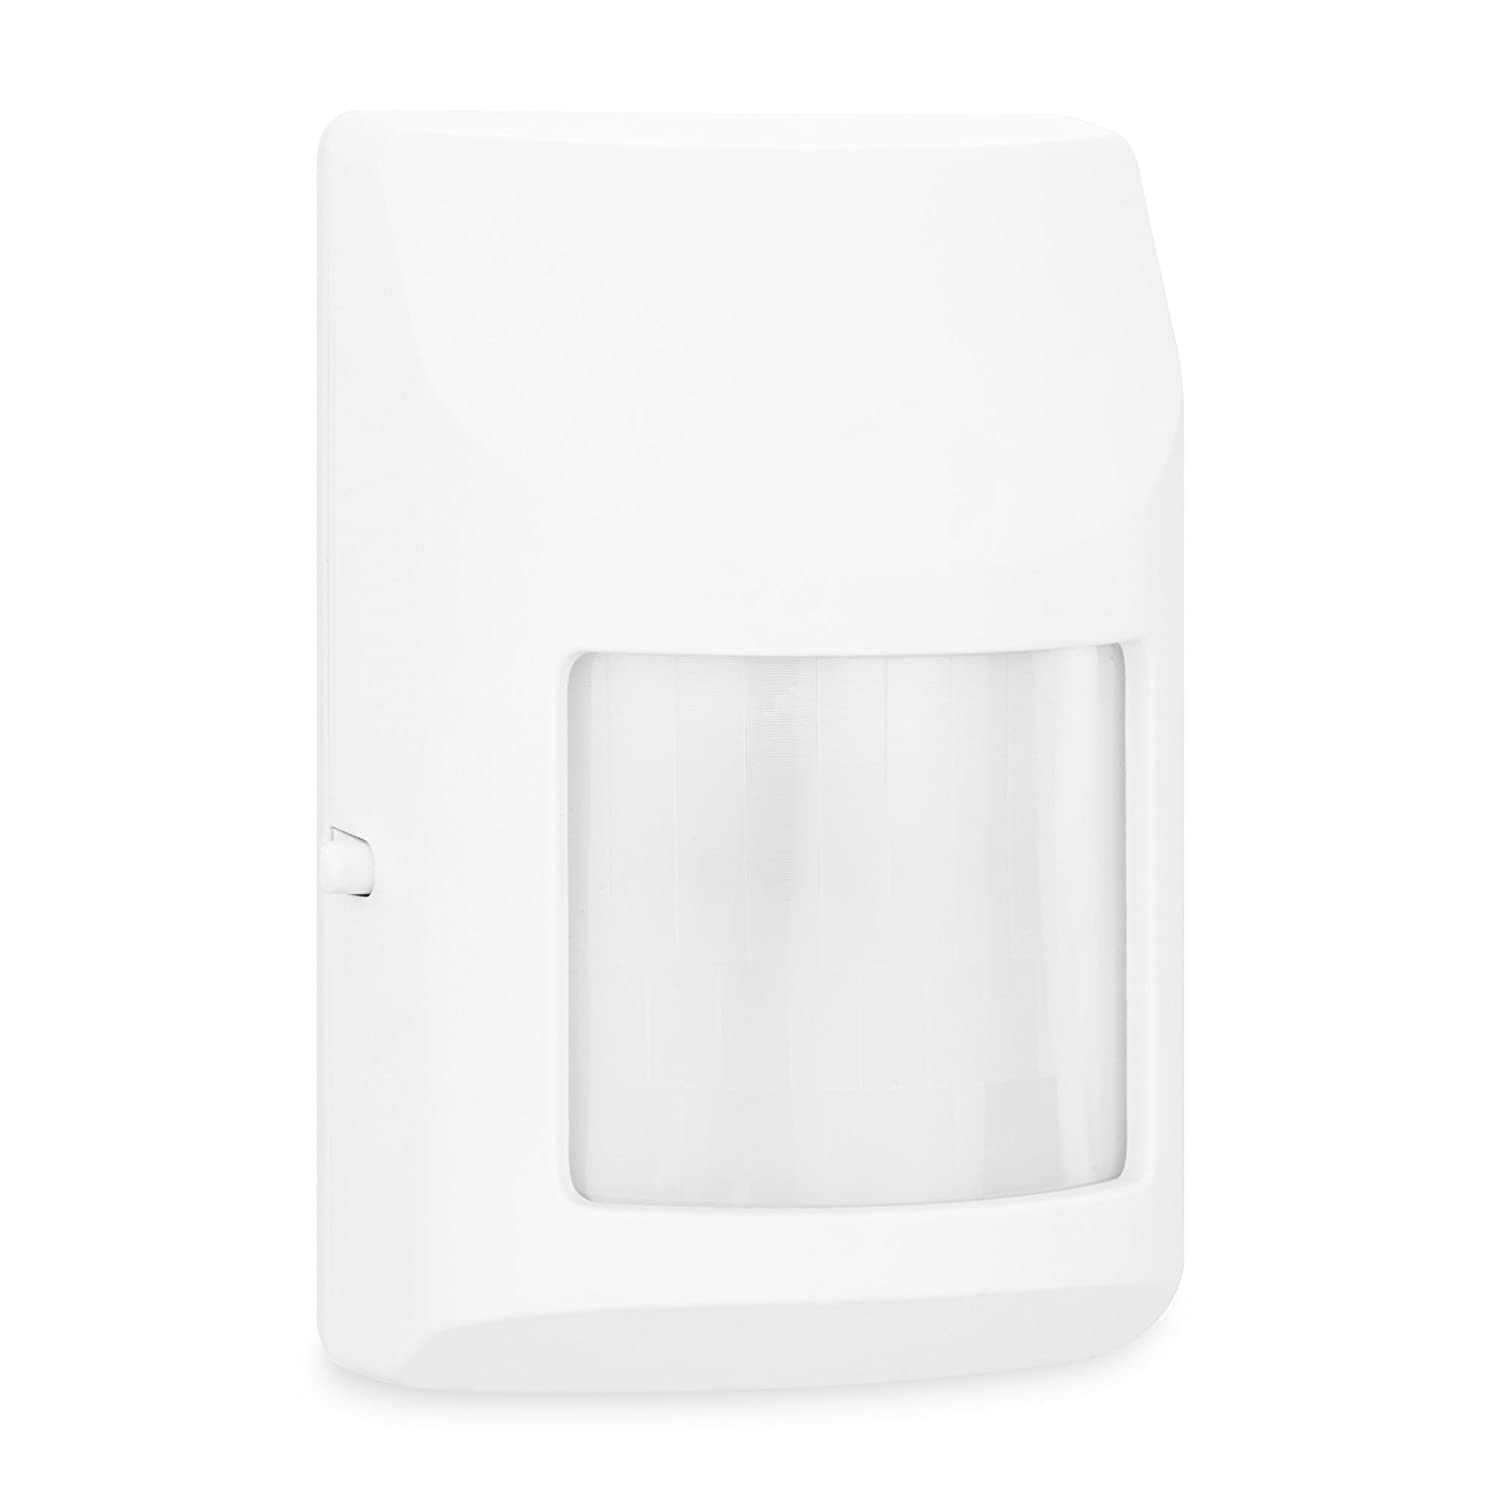 Samsung SmartThings ADT Motion Detector